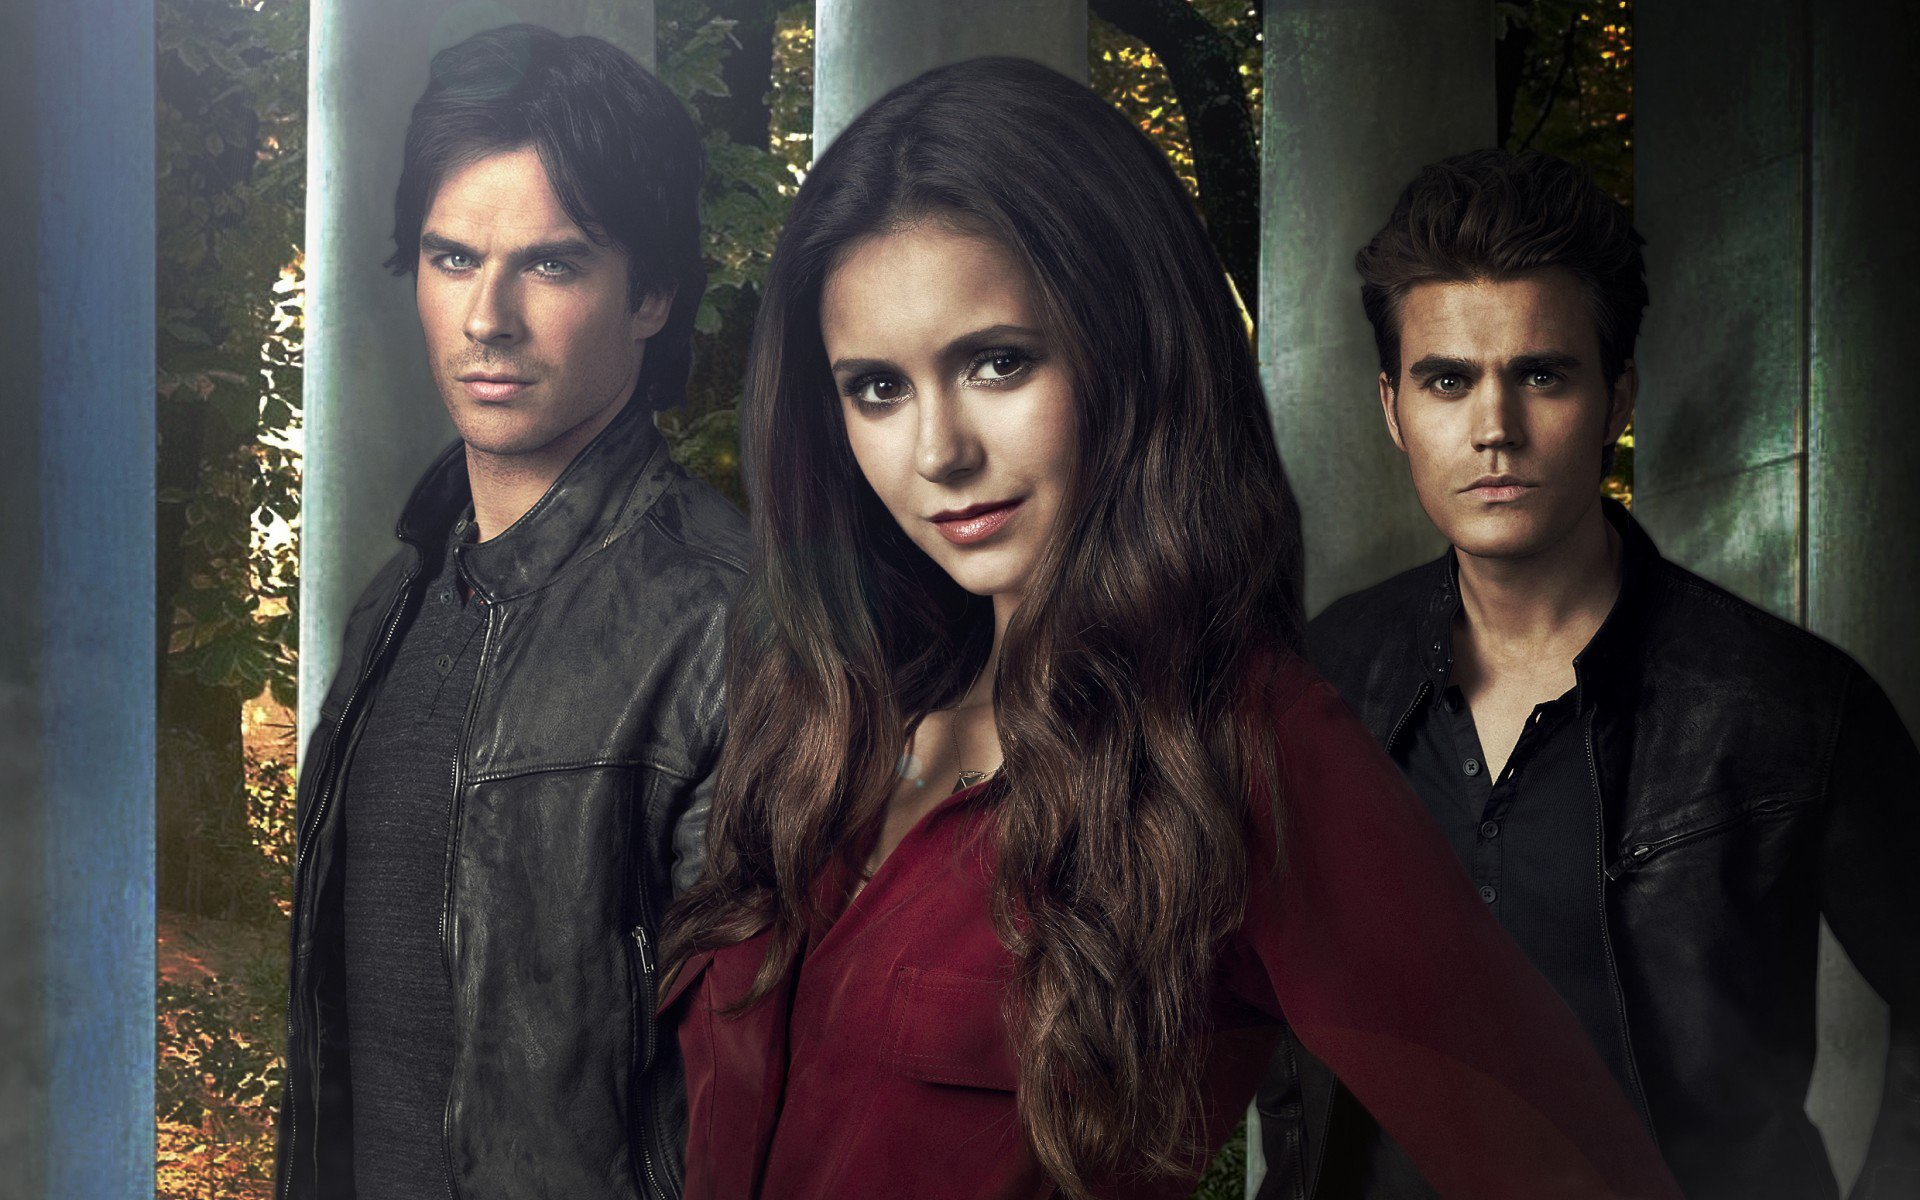 Пол Уэсли, Nina Dobrev, The Vampire Diaries, Paul Wesley, Damon Salvatore